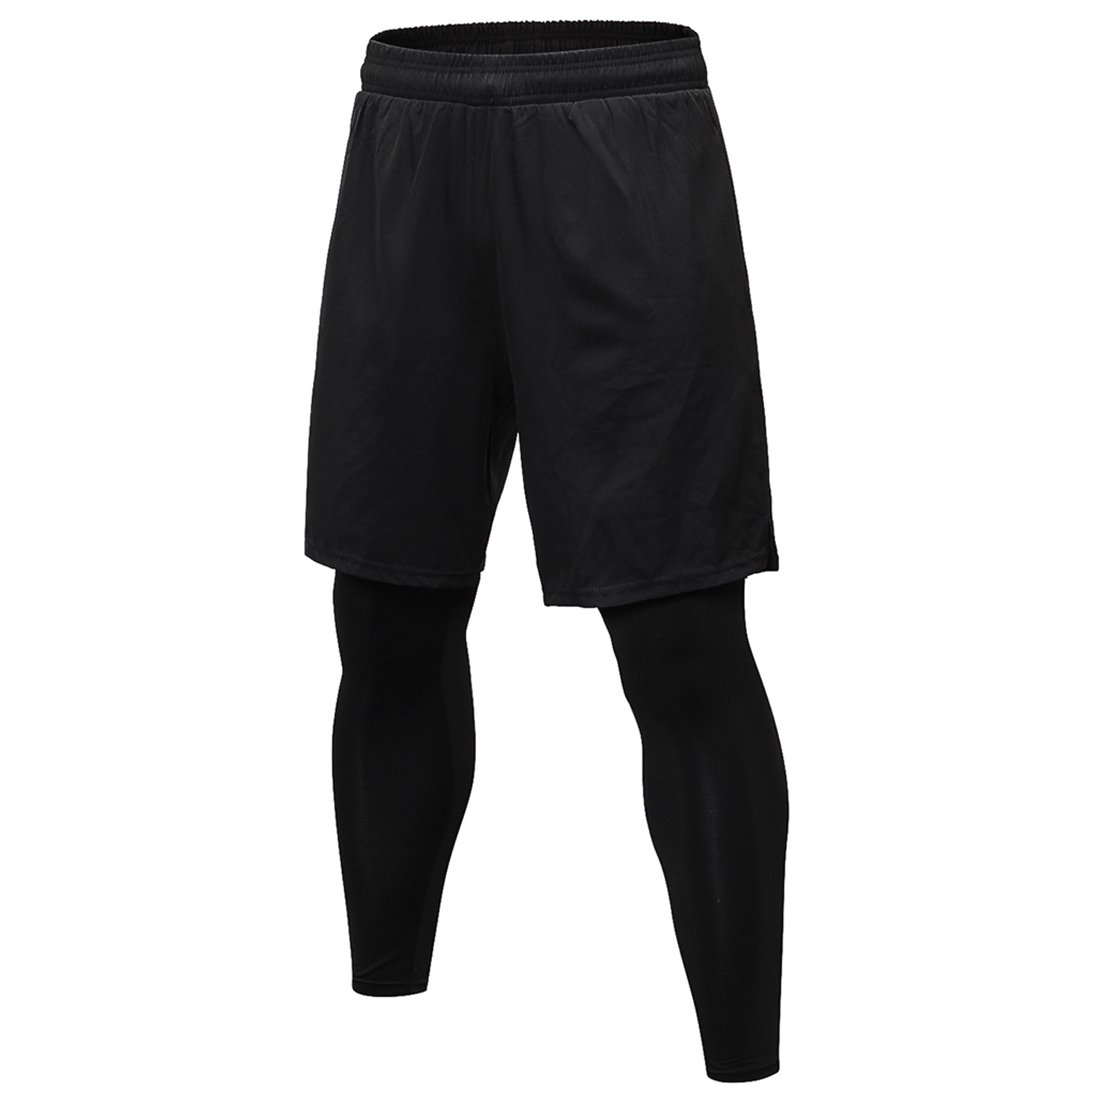 88b67fa893 SEVENWELL:S-LEVEL Quality For Well-Fitted Sport Clothing, Perfect For Daily  Exercise! SEVENWELL Mens Athletic Tights Running Baselayer Leggings /  Running ...